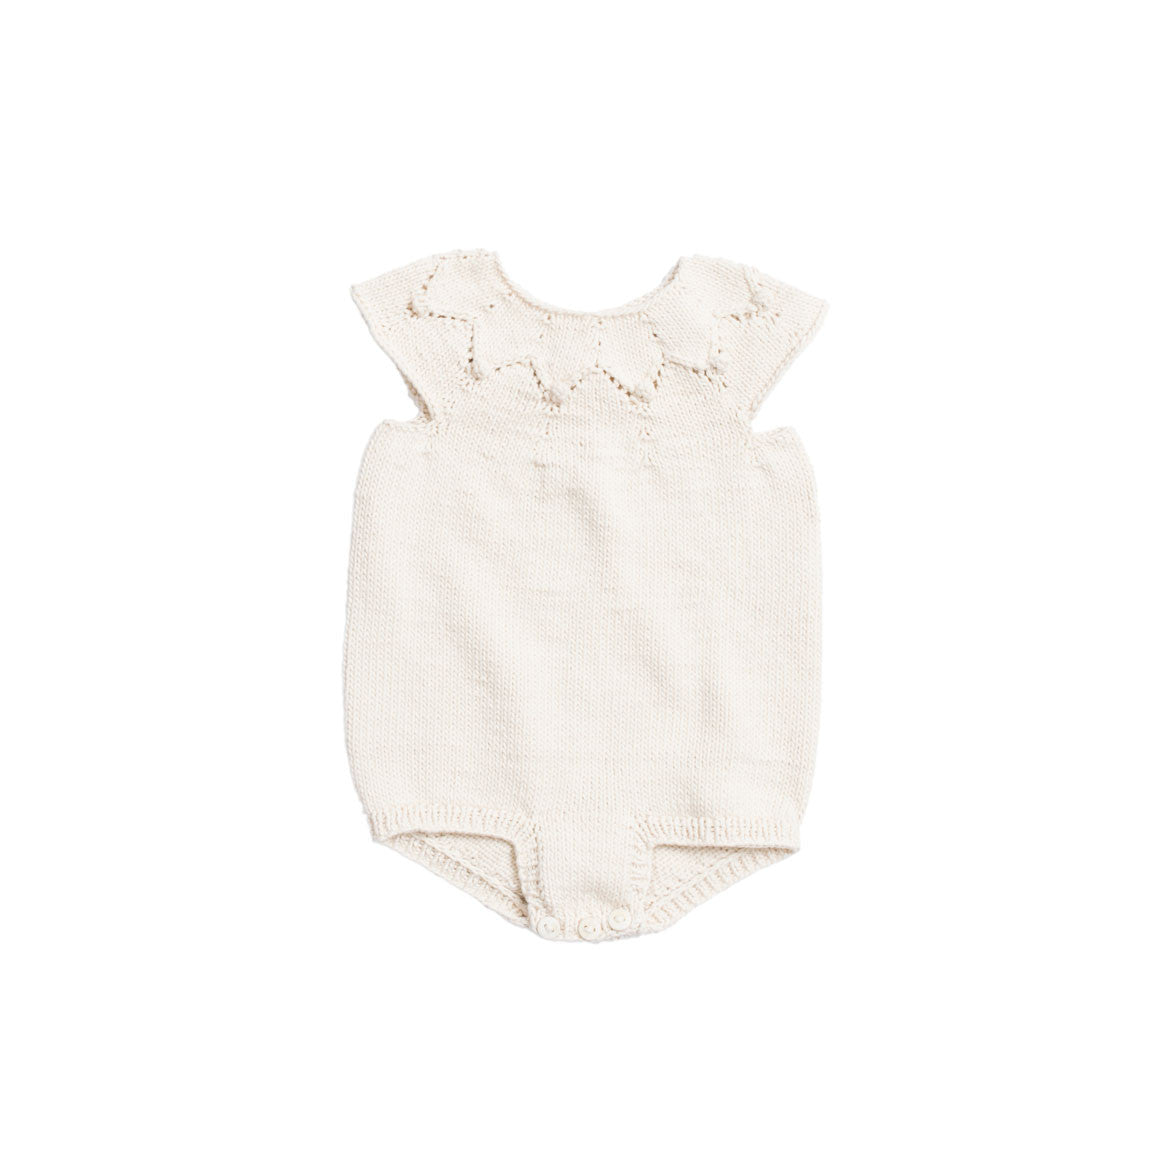 Misha & Puff Natural High Tide Romper - Ladida